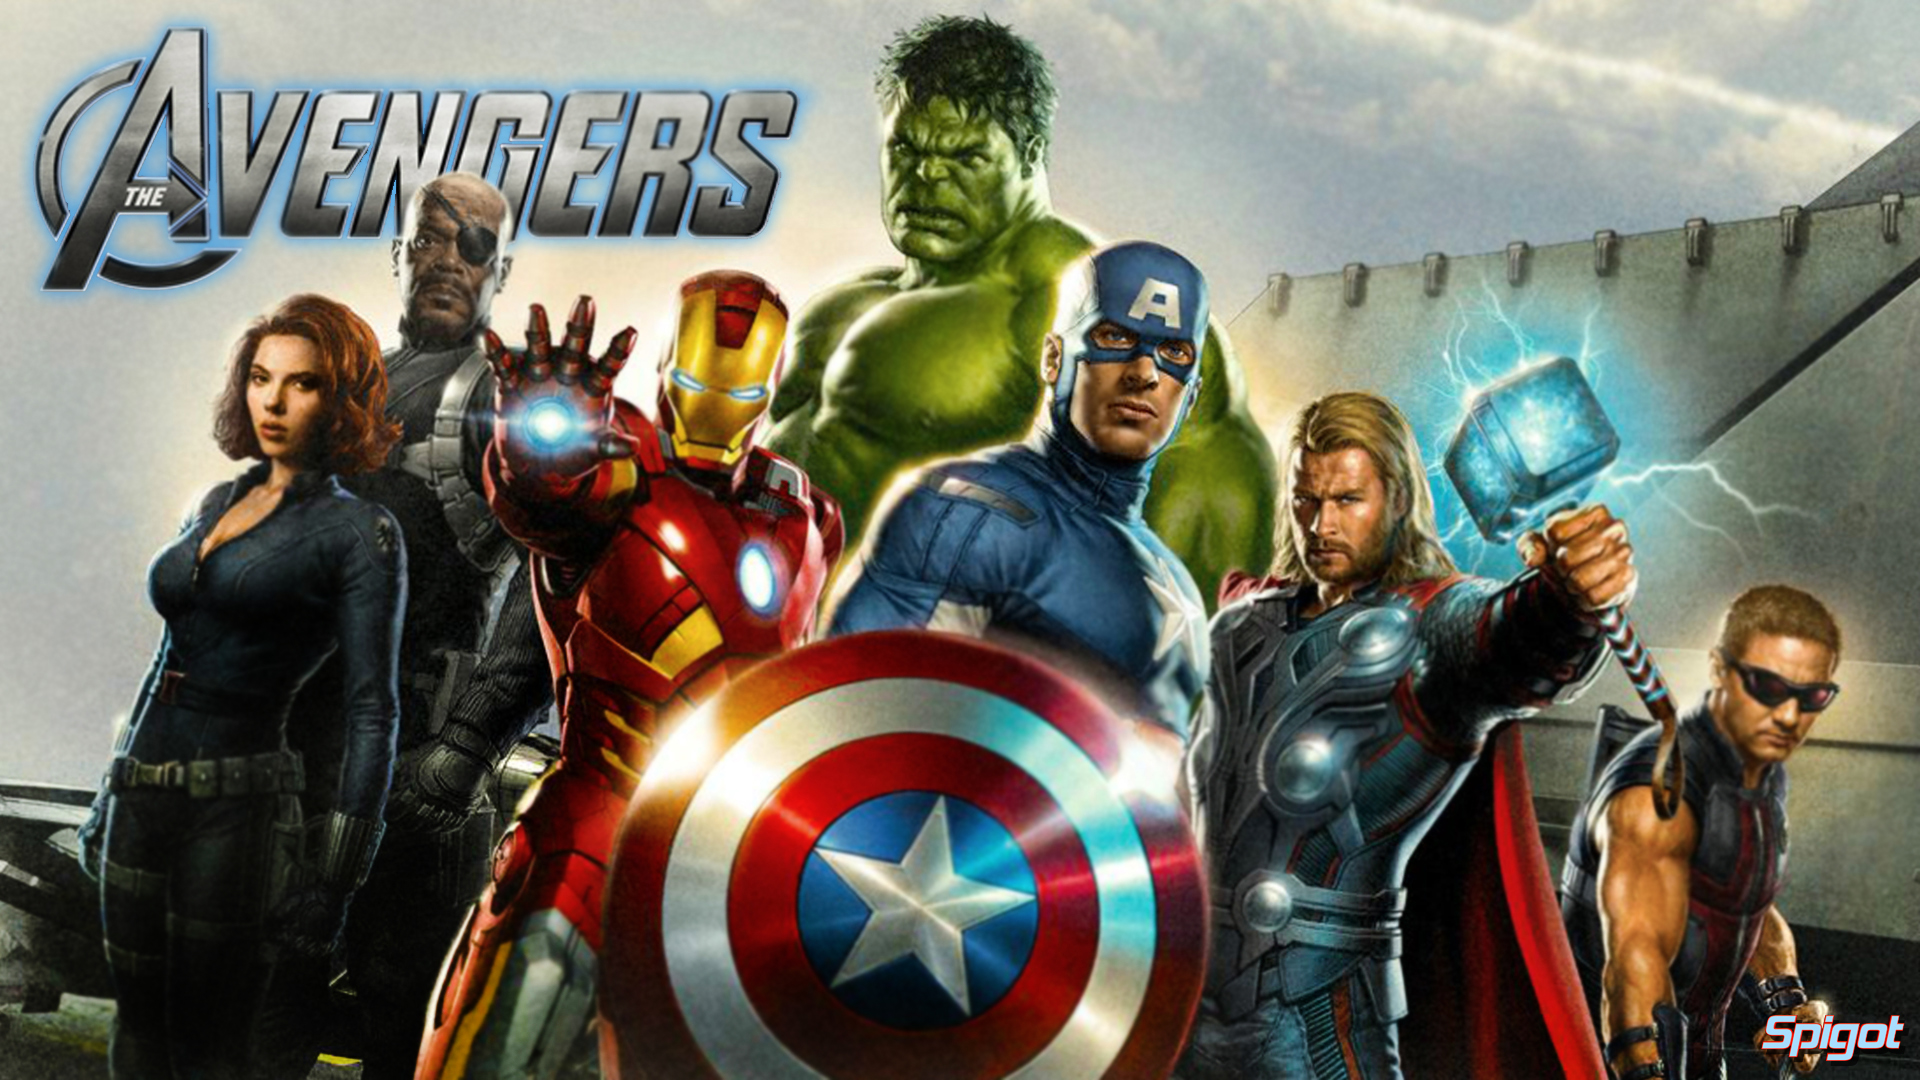 35 Best Avengers Wallpaper For Desktop HD Wallpapers Download Free Images Wallpaper [1000image.com]